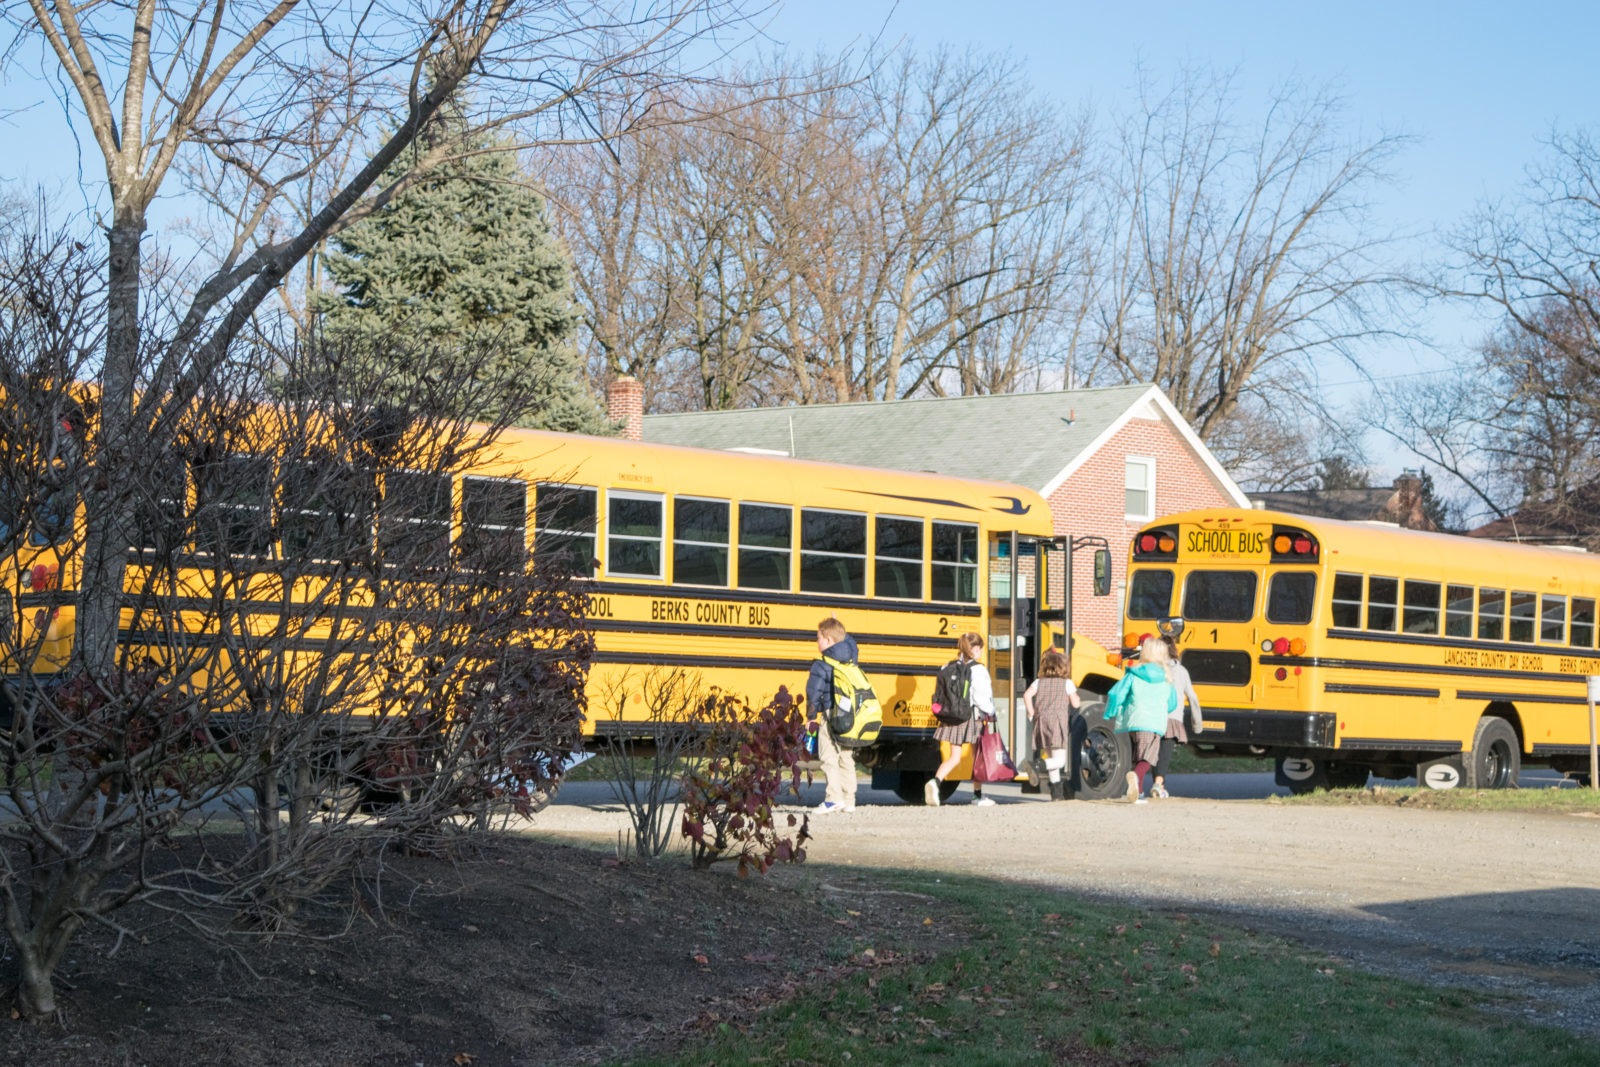 Boarding the afternoon buses.